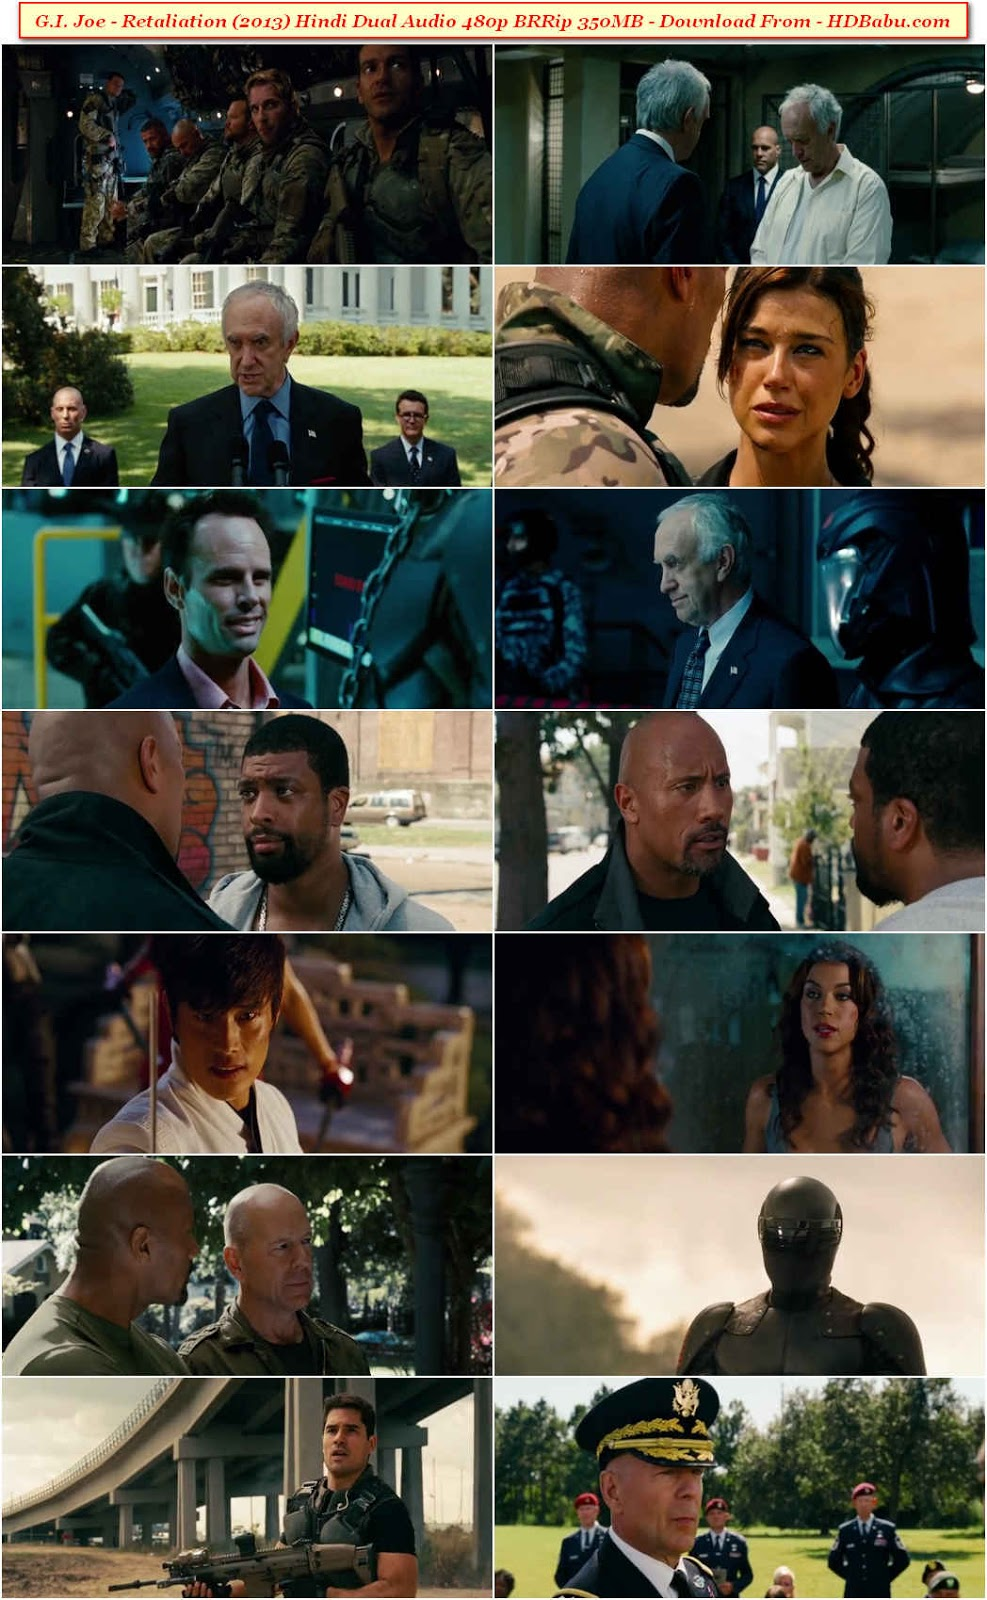 G I Joe - Retaliation Dual Audio Movie Download